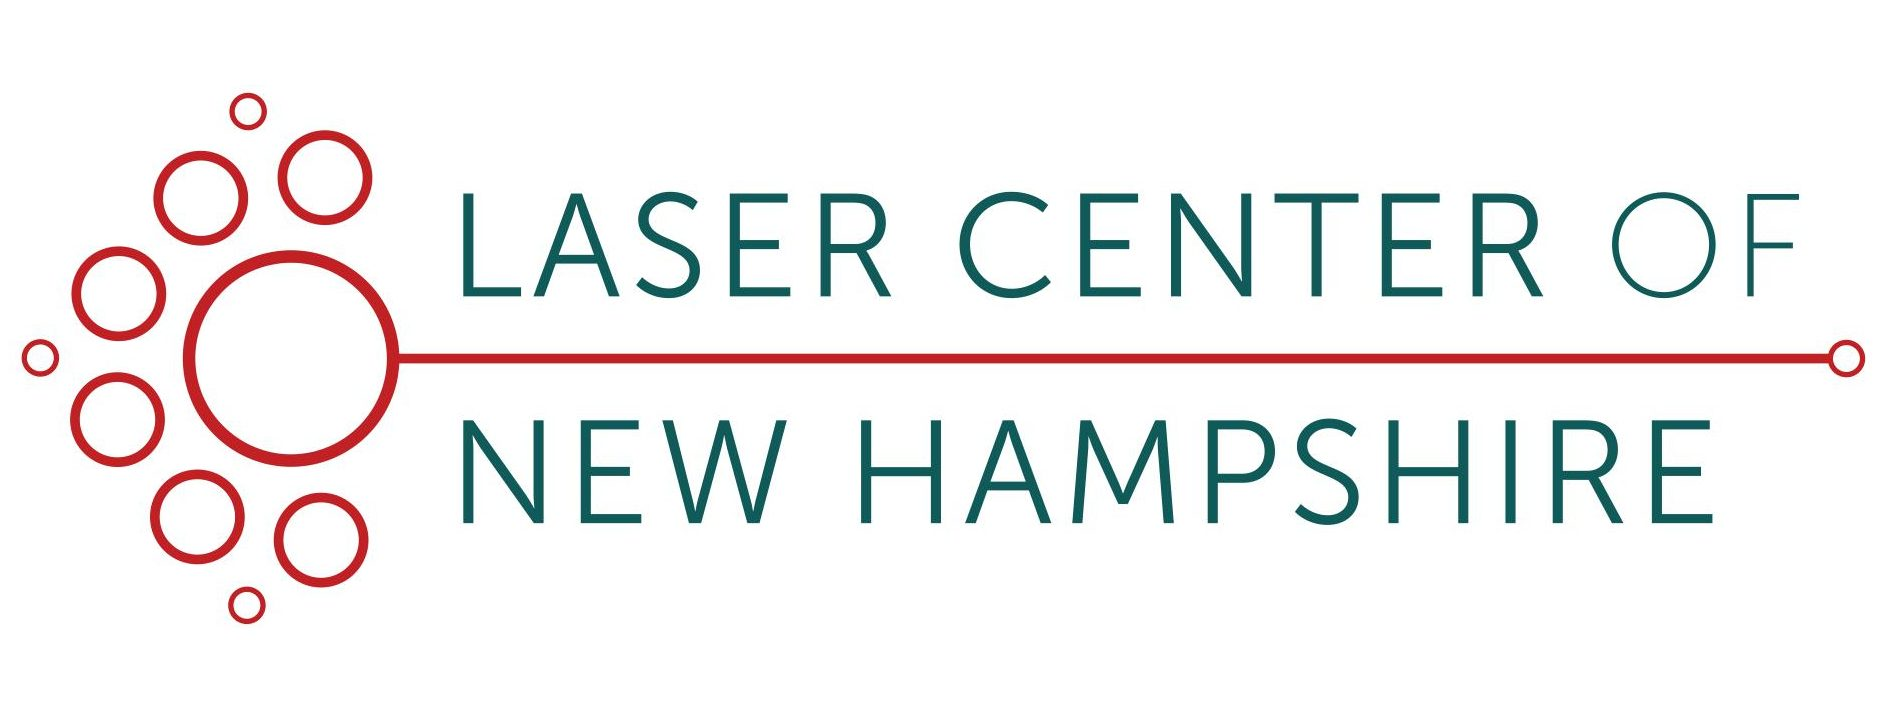 Laser Center of New Hampshire